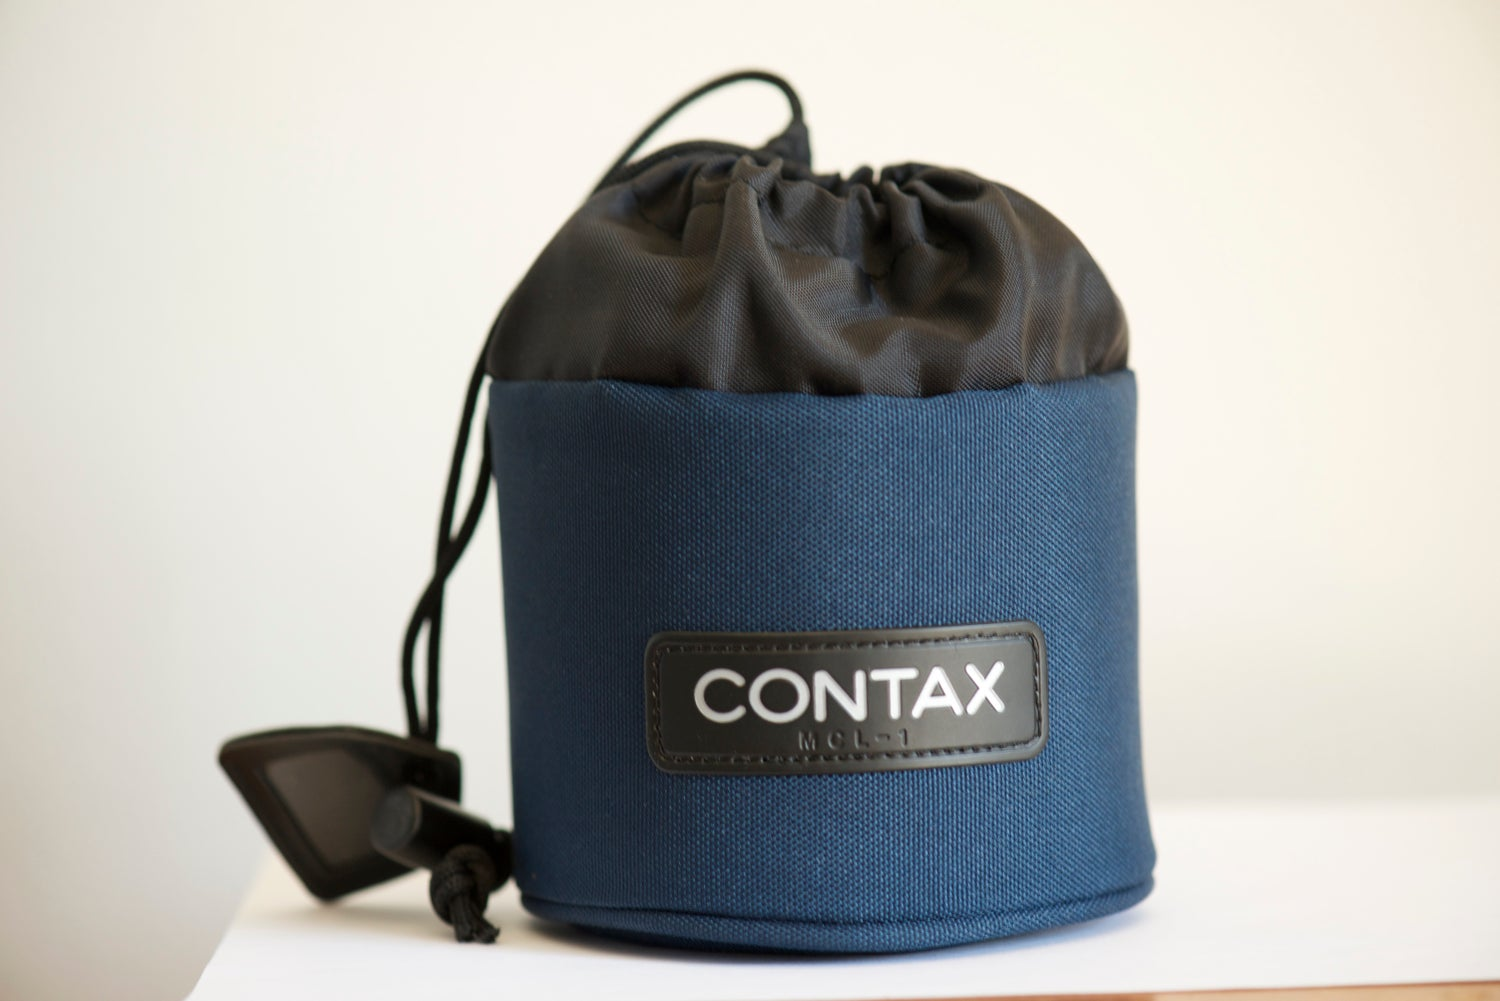 Image of Contax MCL-1 padded lens pouch